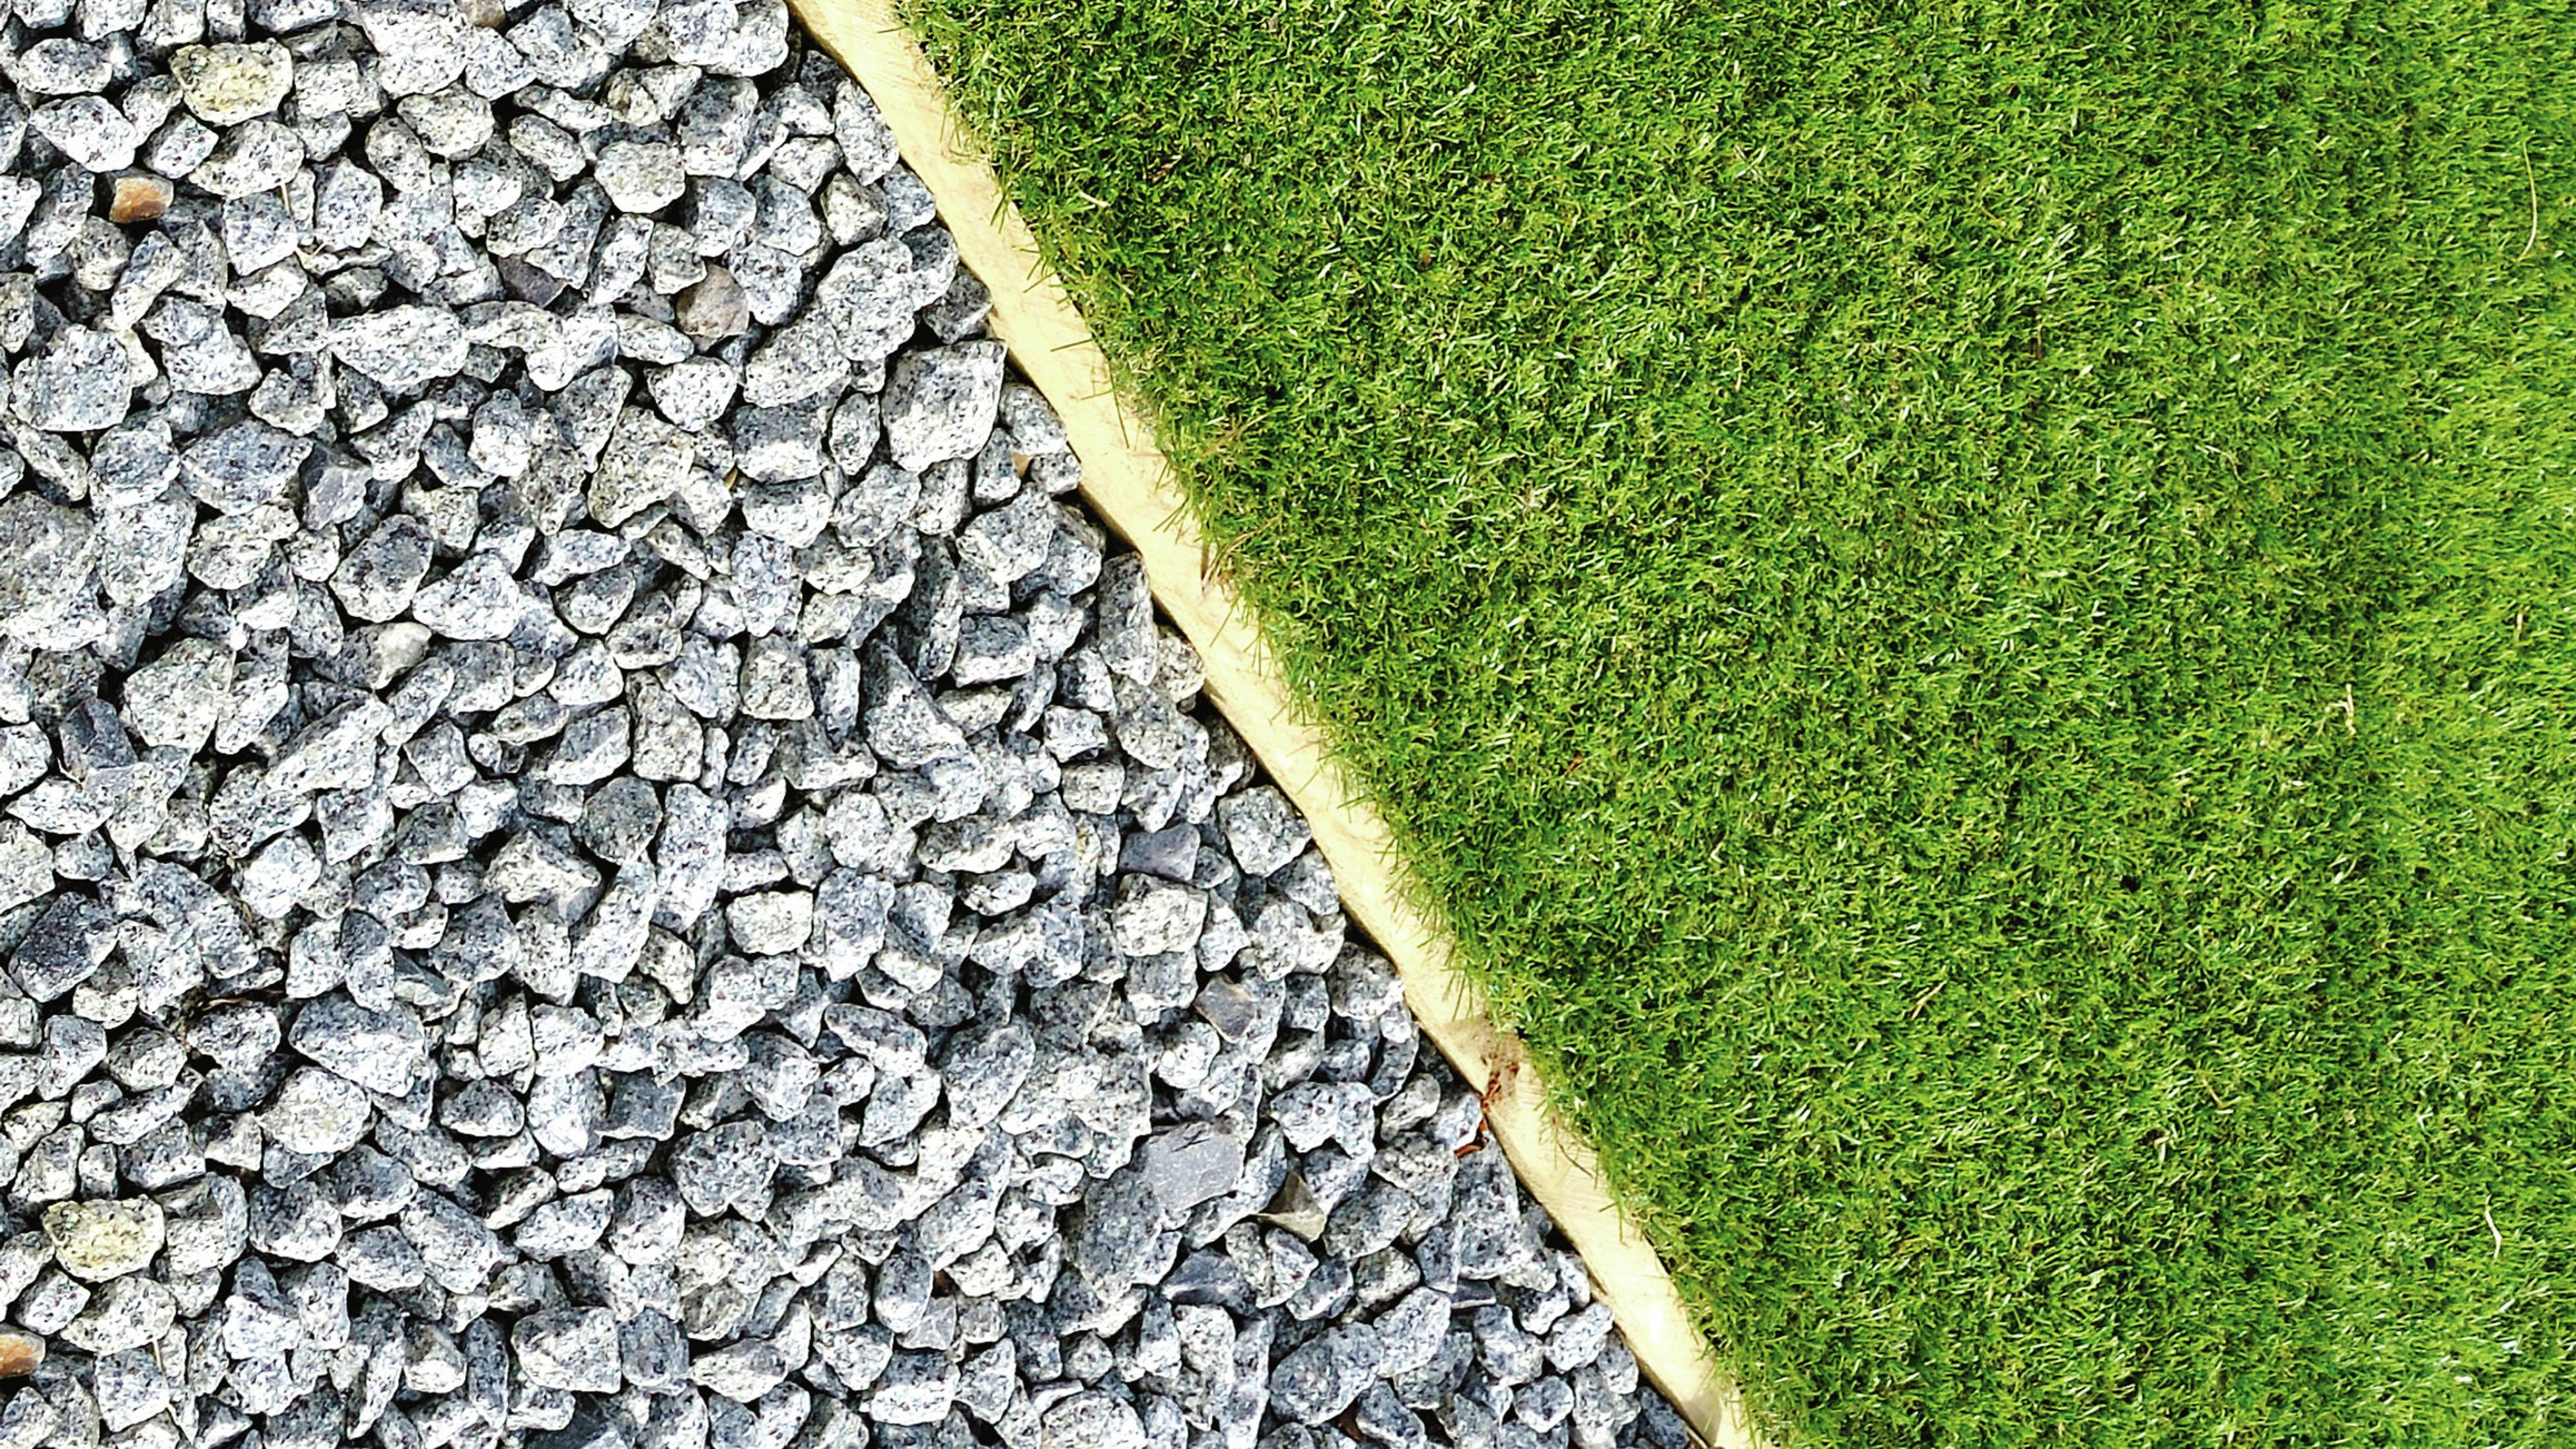 Gravel, pebbles and grass separated by retaining wall.